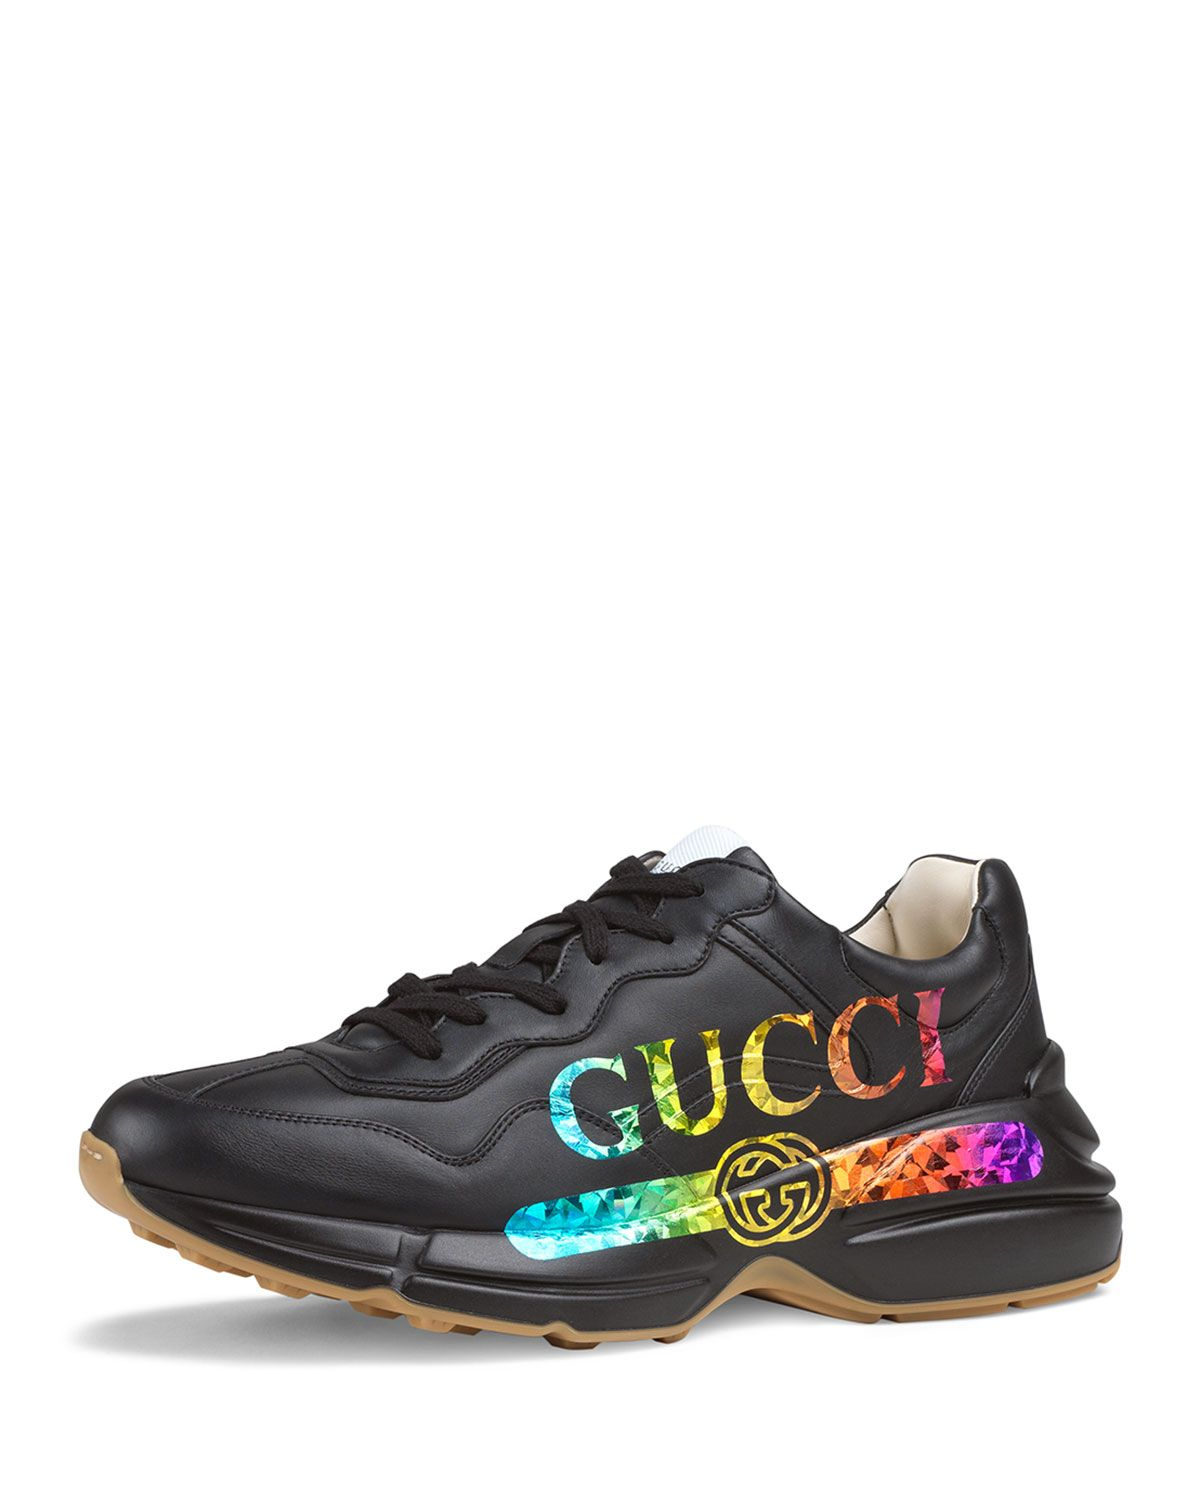 578923b72 GUCCI MEN S RHYTON LOGO-PRINT LEATHER SNEAKER.  gucci  shoes